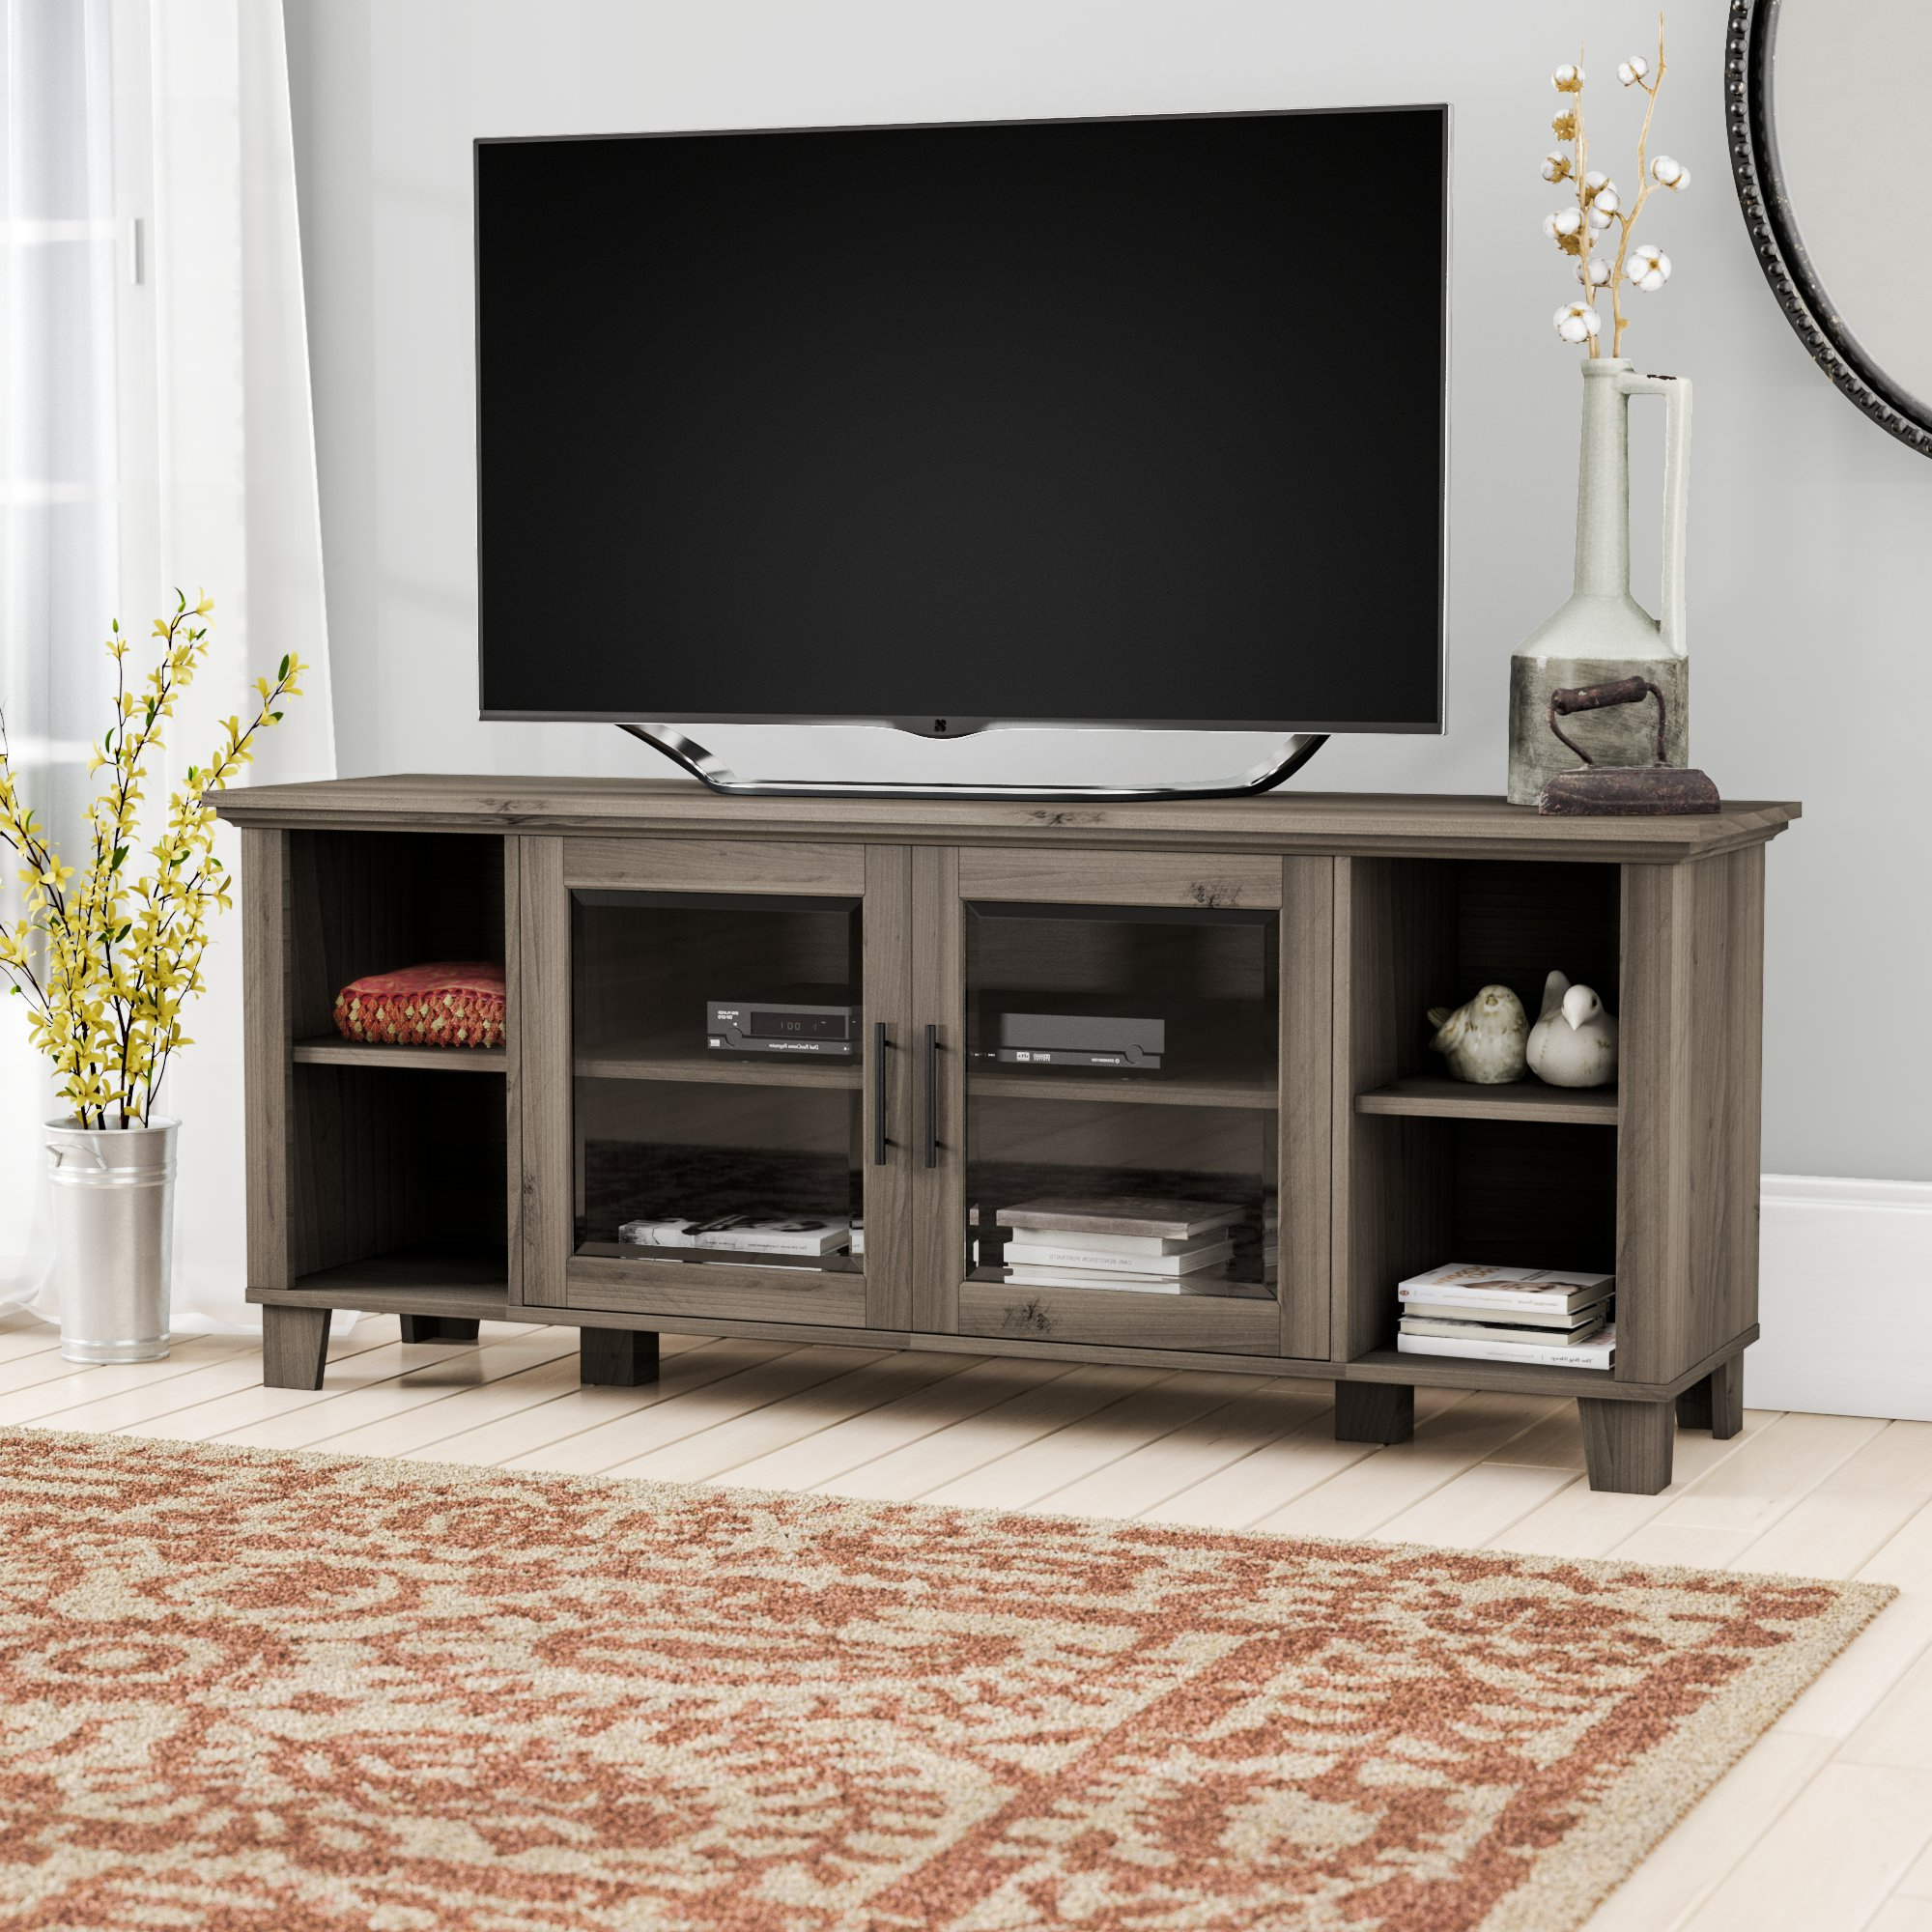 Grey Tv Stands | Birch Lane With Regard To Sinclair Grey 74 Inch Tv Stands (View 5 of 20)